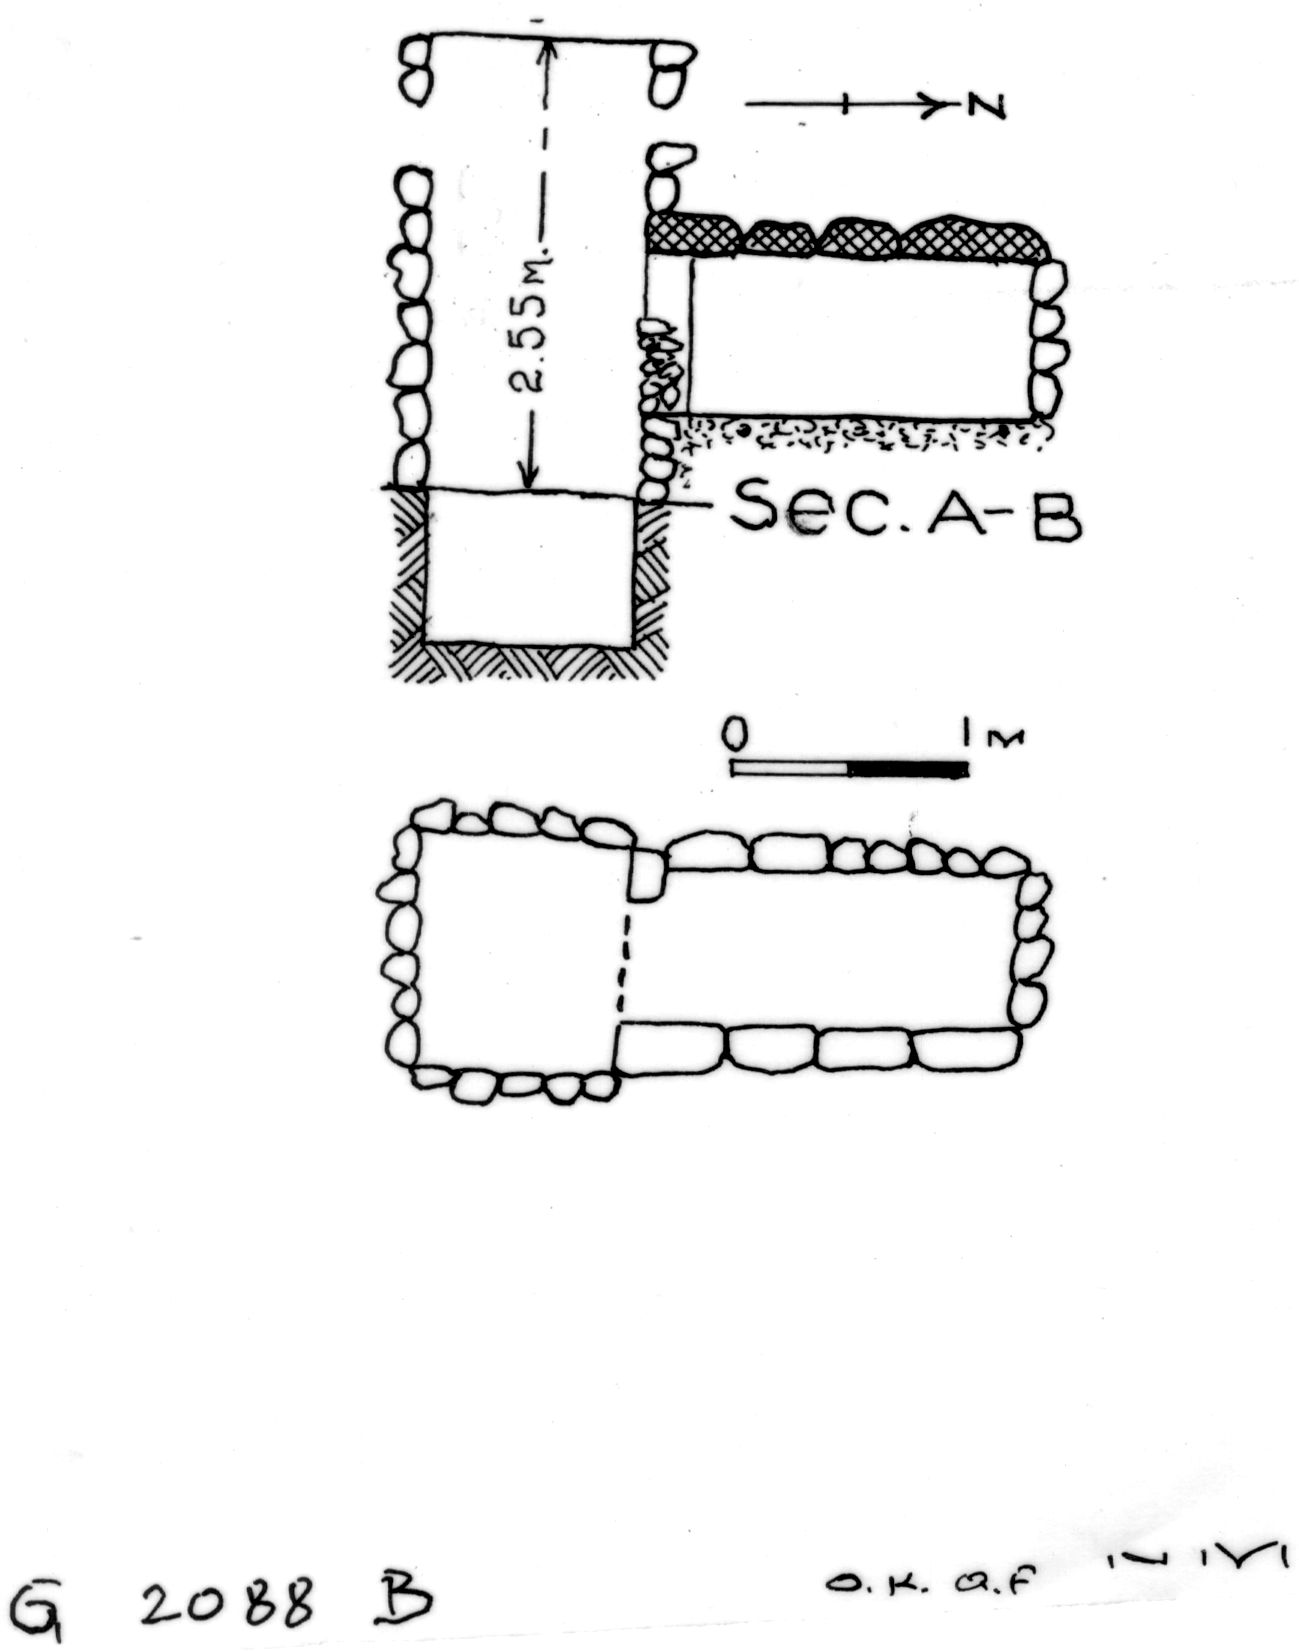 Maps and plans: G 2088, Shaft B